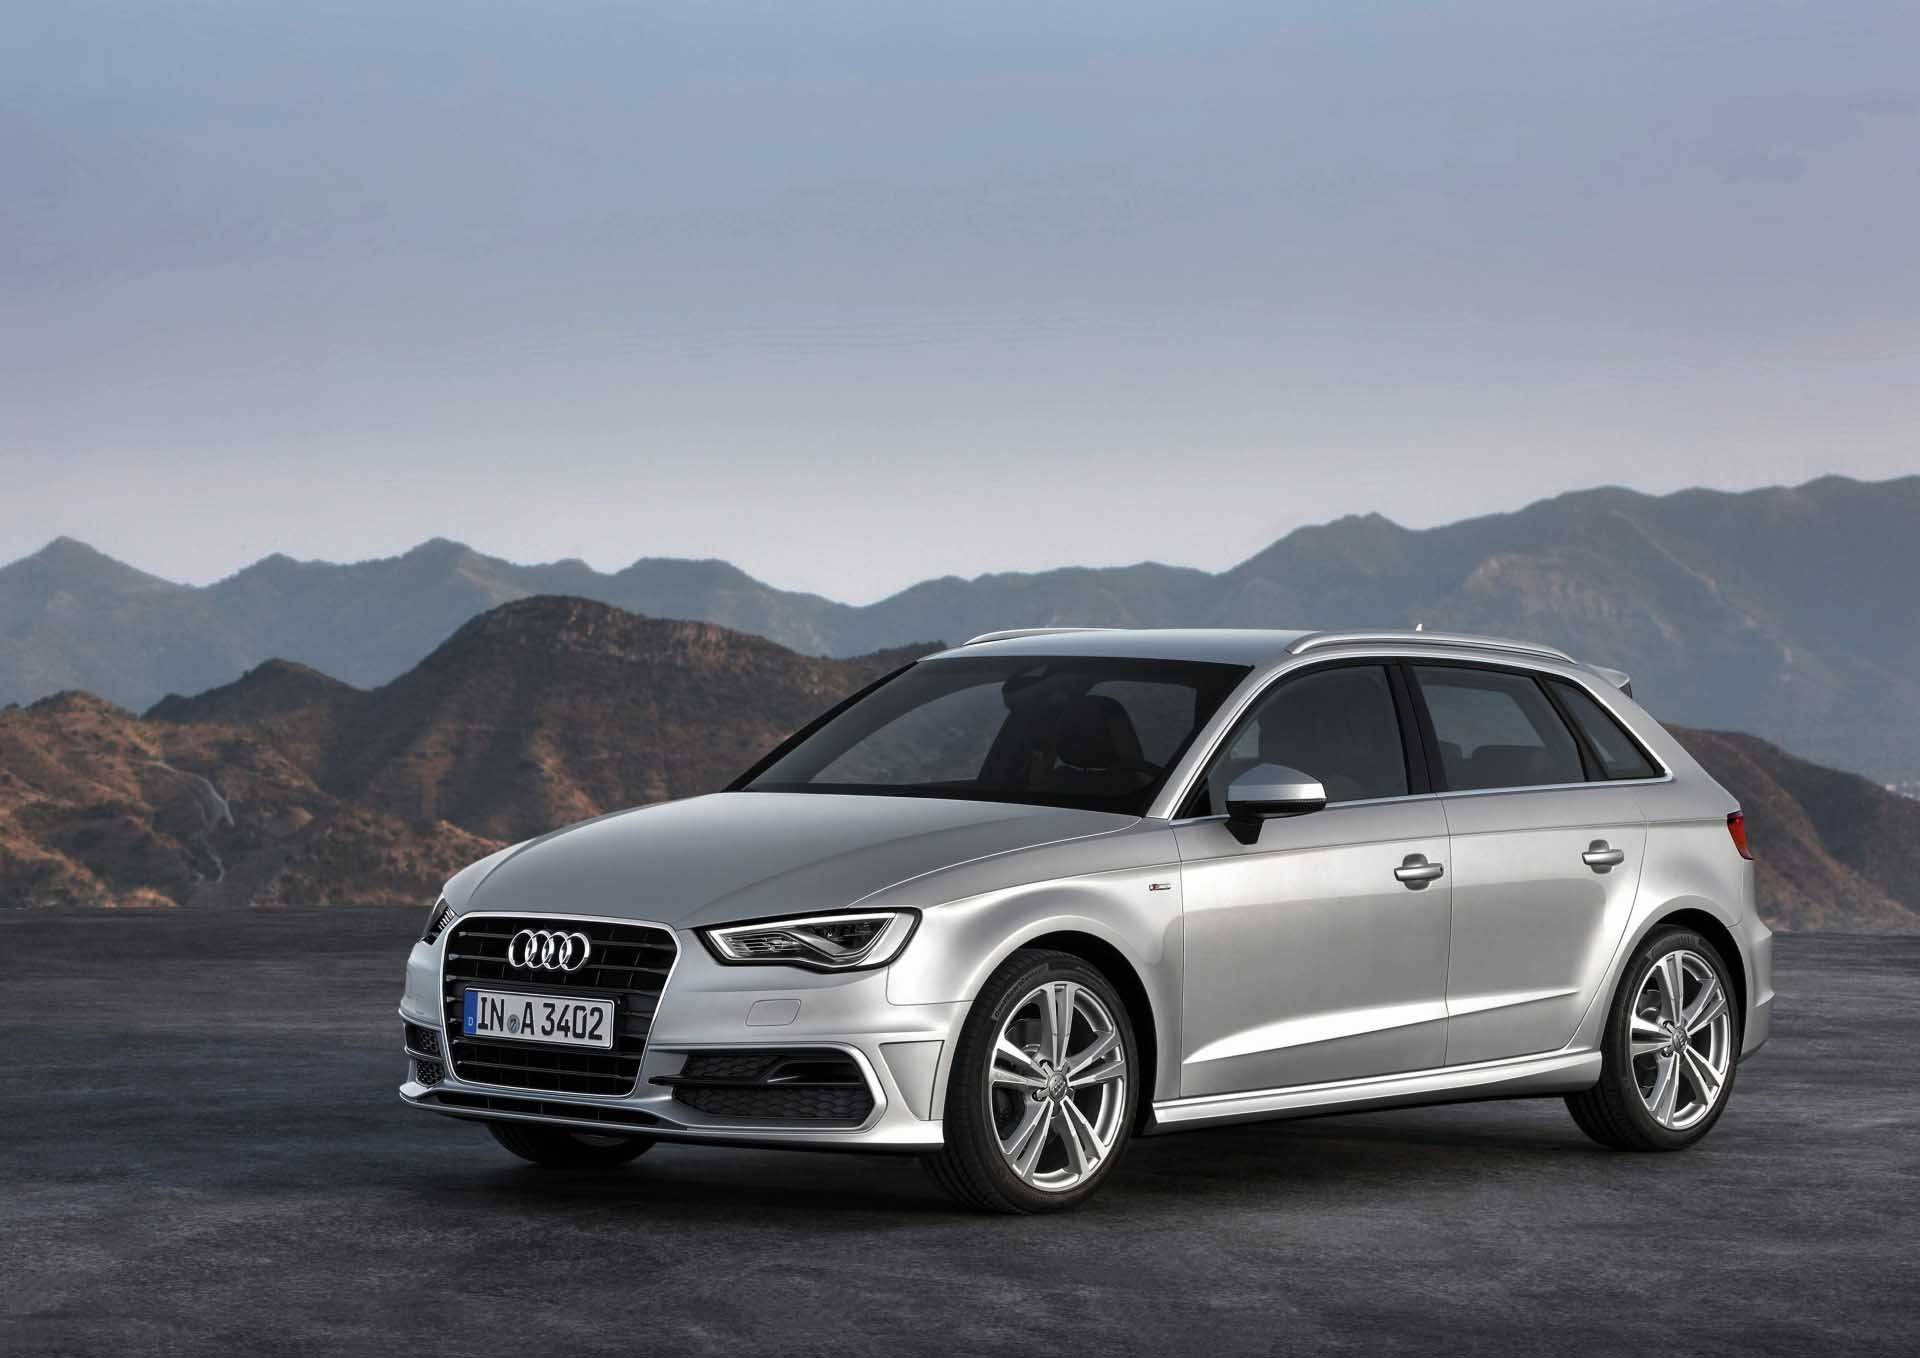 10 Great Audi A3 Sportback Silver Desktop Wallpaper Audi